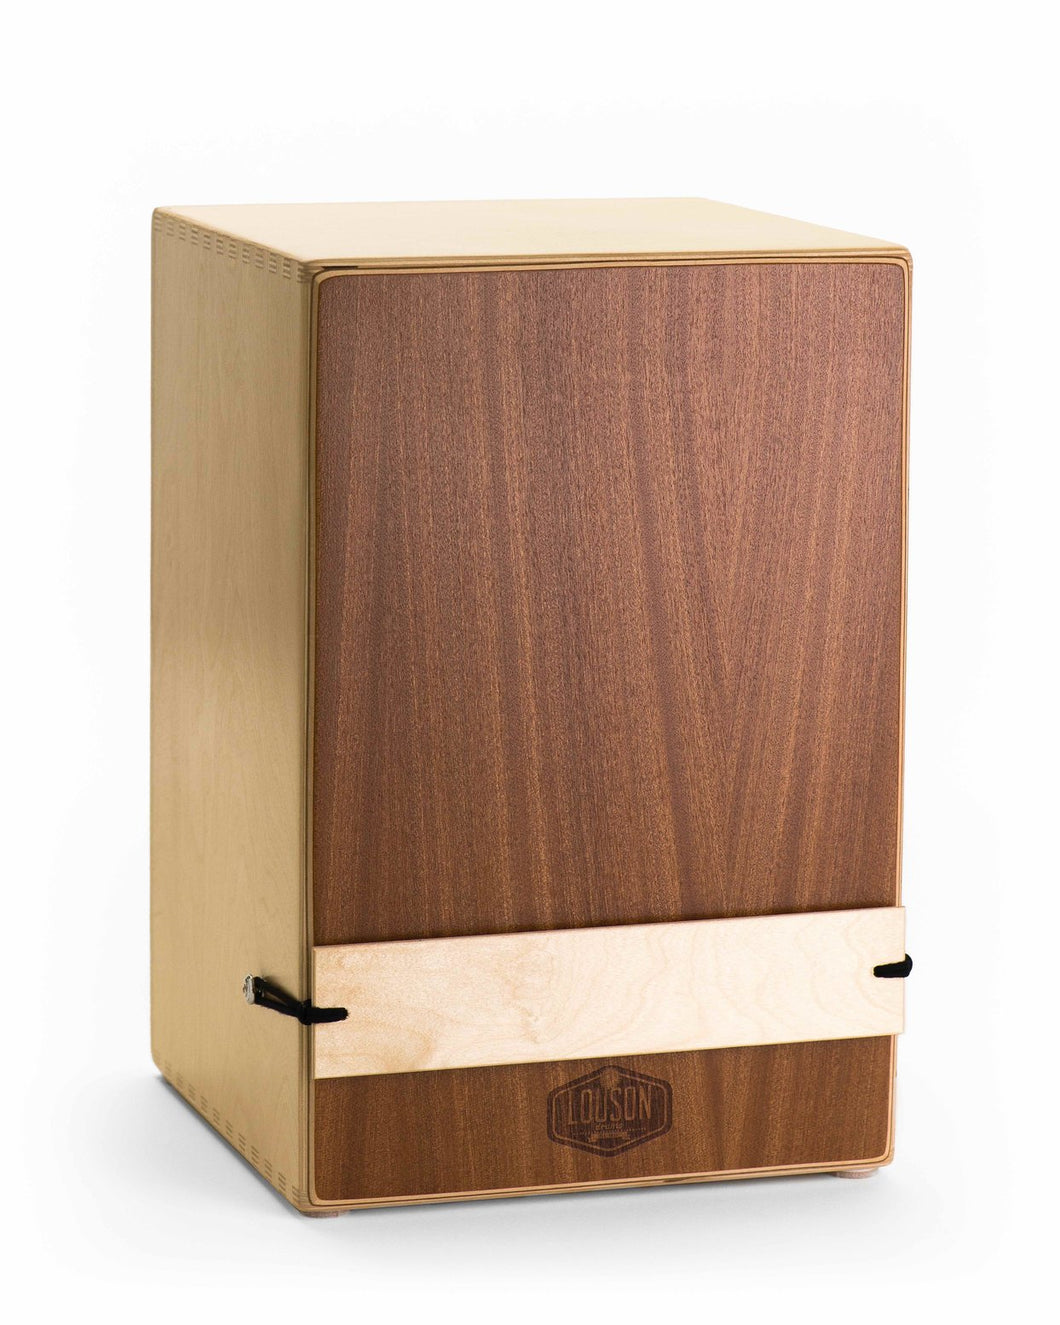 Cajon with external snare - Standard Birch and Mahogany